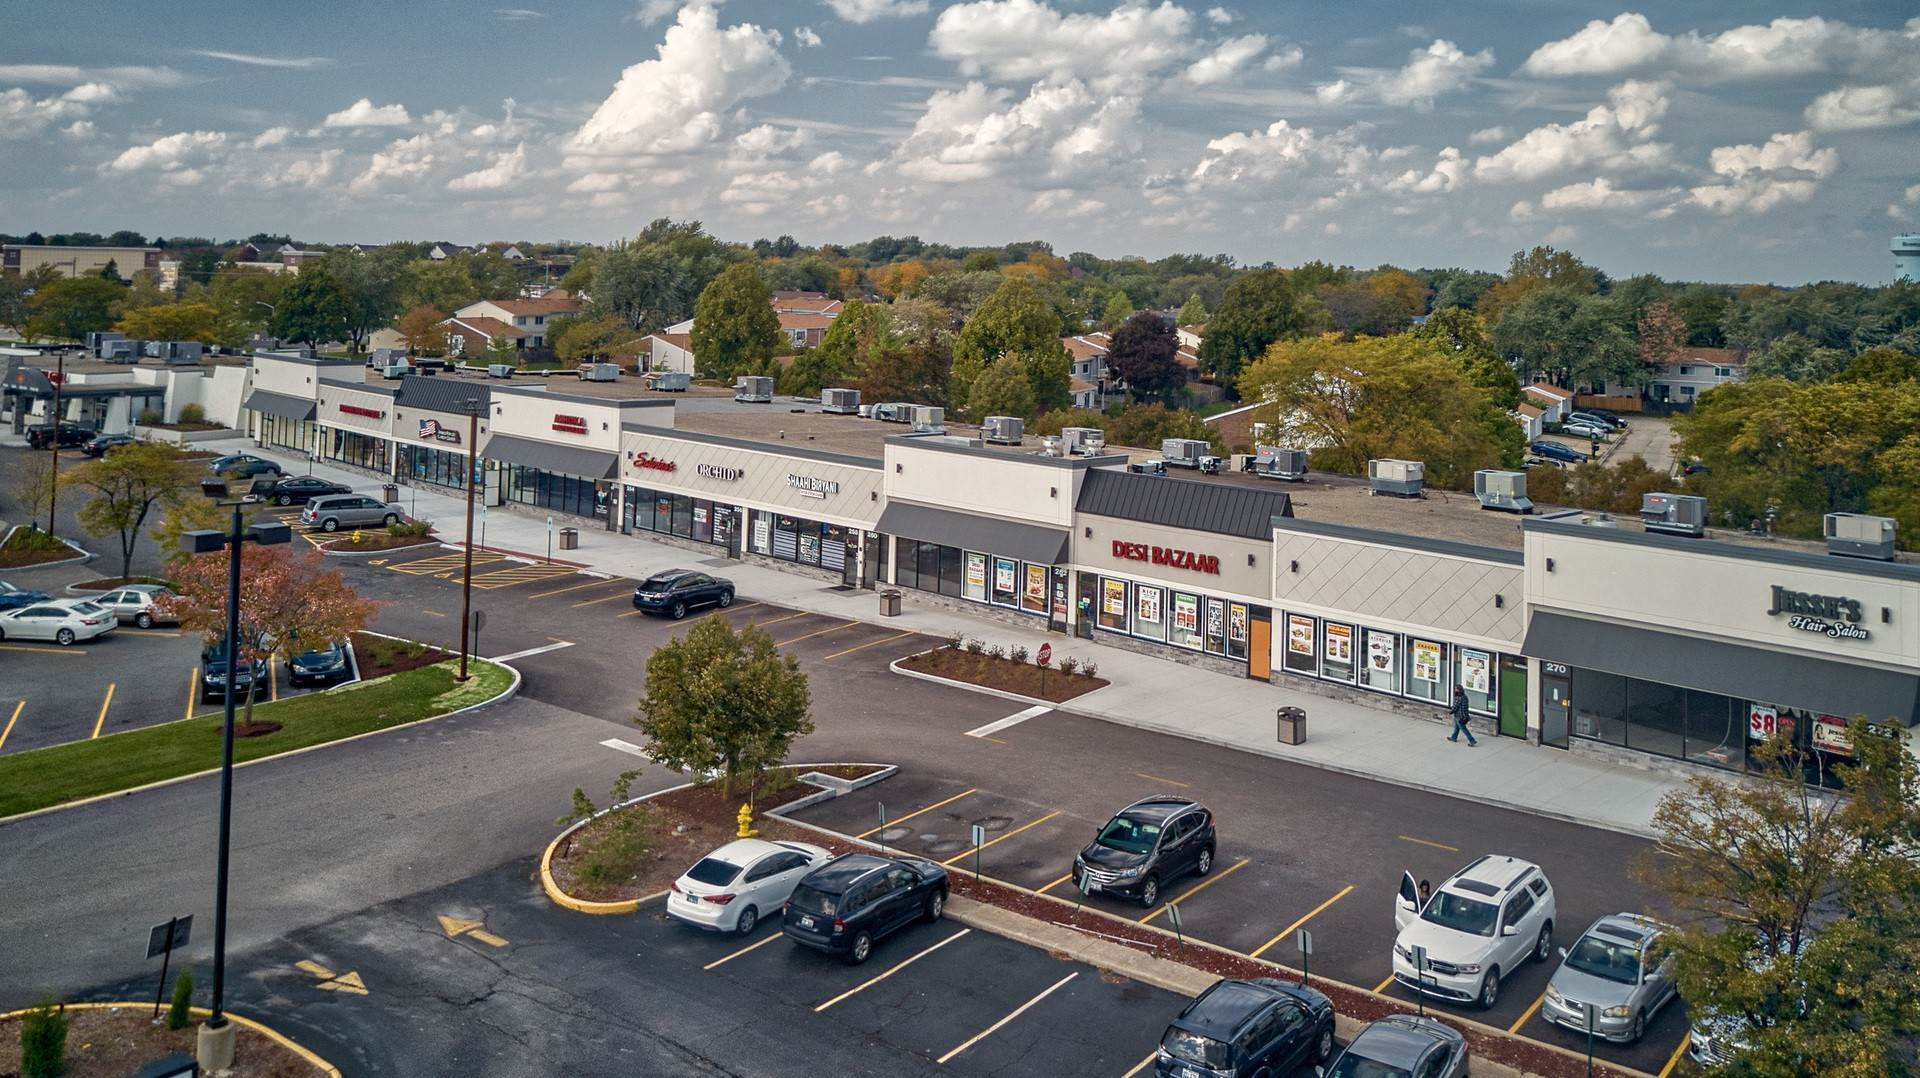 Commercial at 248 Town Center Lane Glendale Heights, Illinois 60139 United States